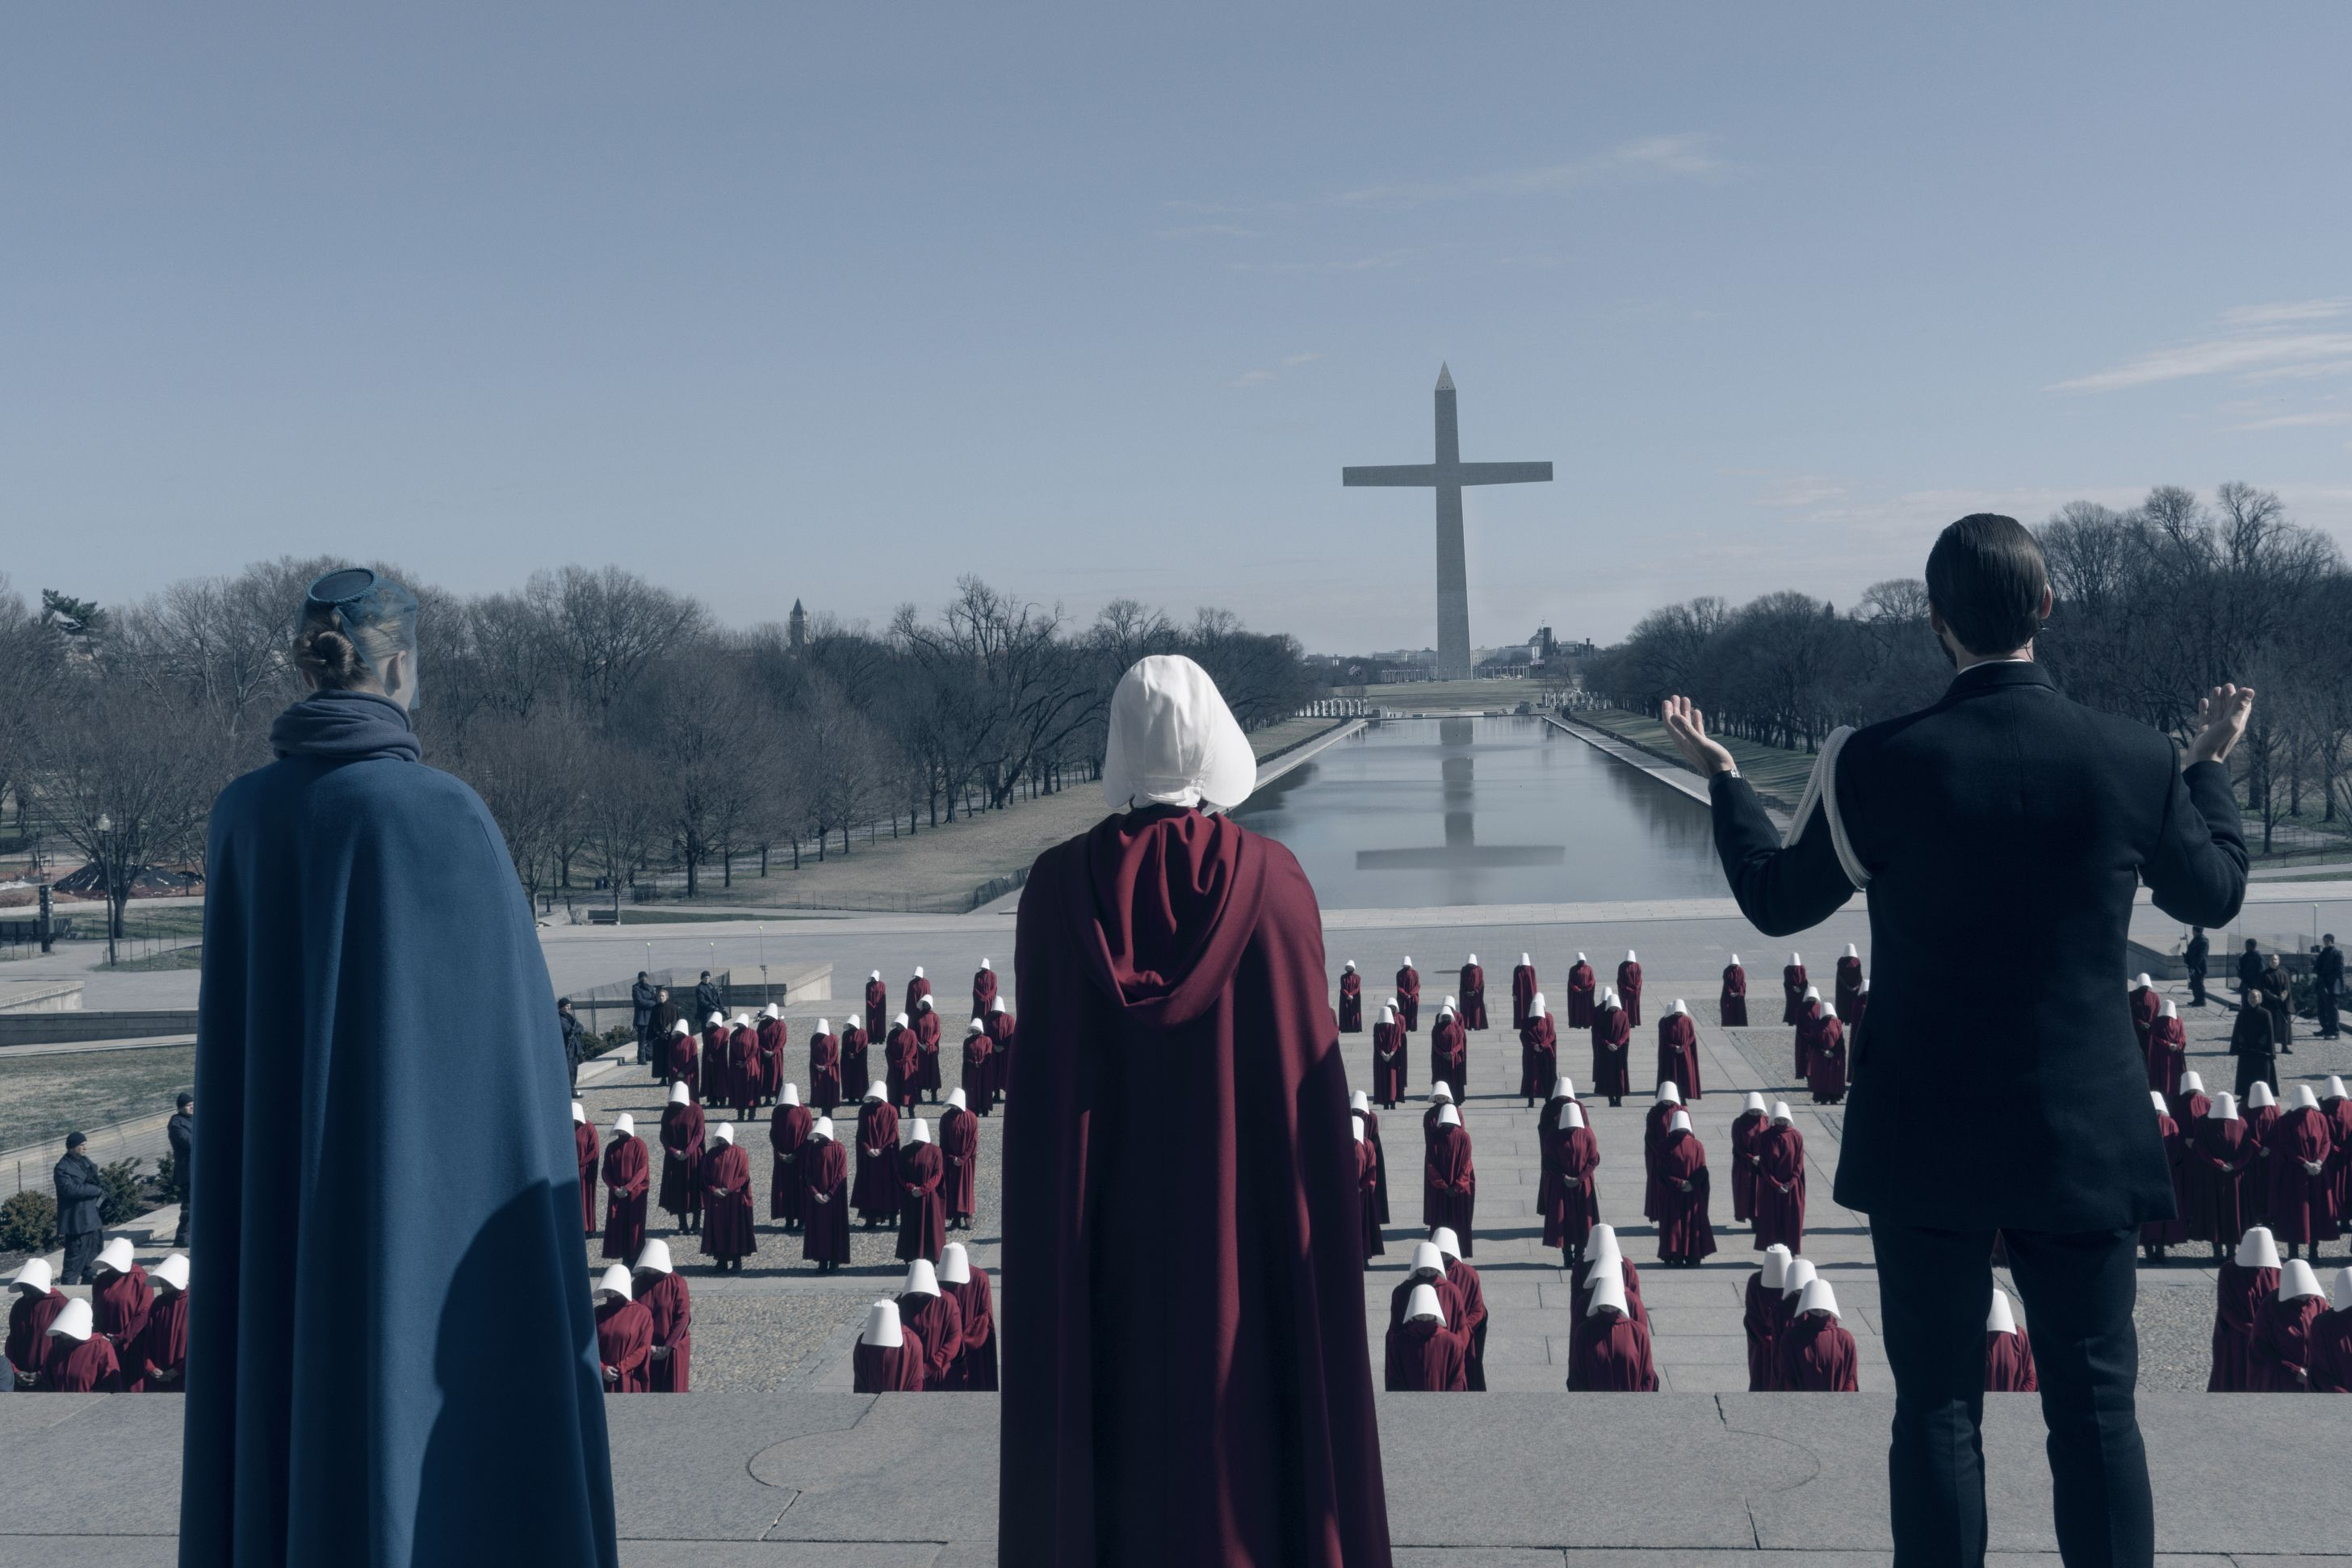 How The Handmaid's Tale Built Its Nightmare Vision of Washington, D.C.